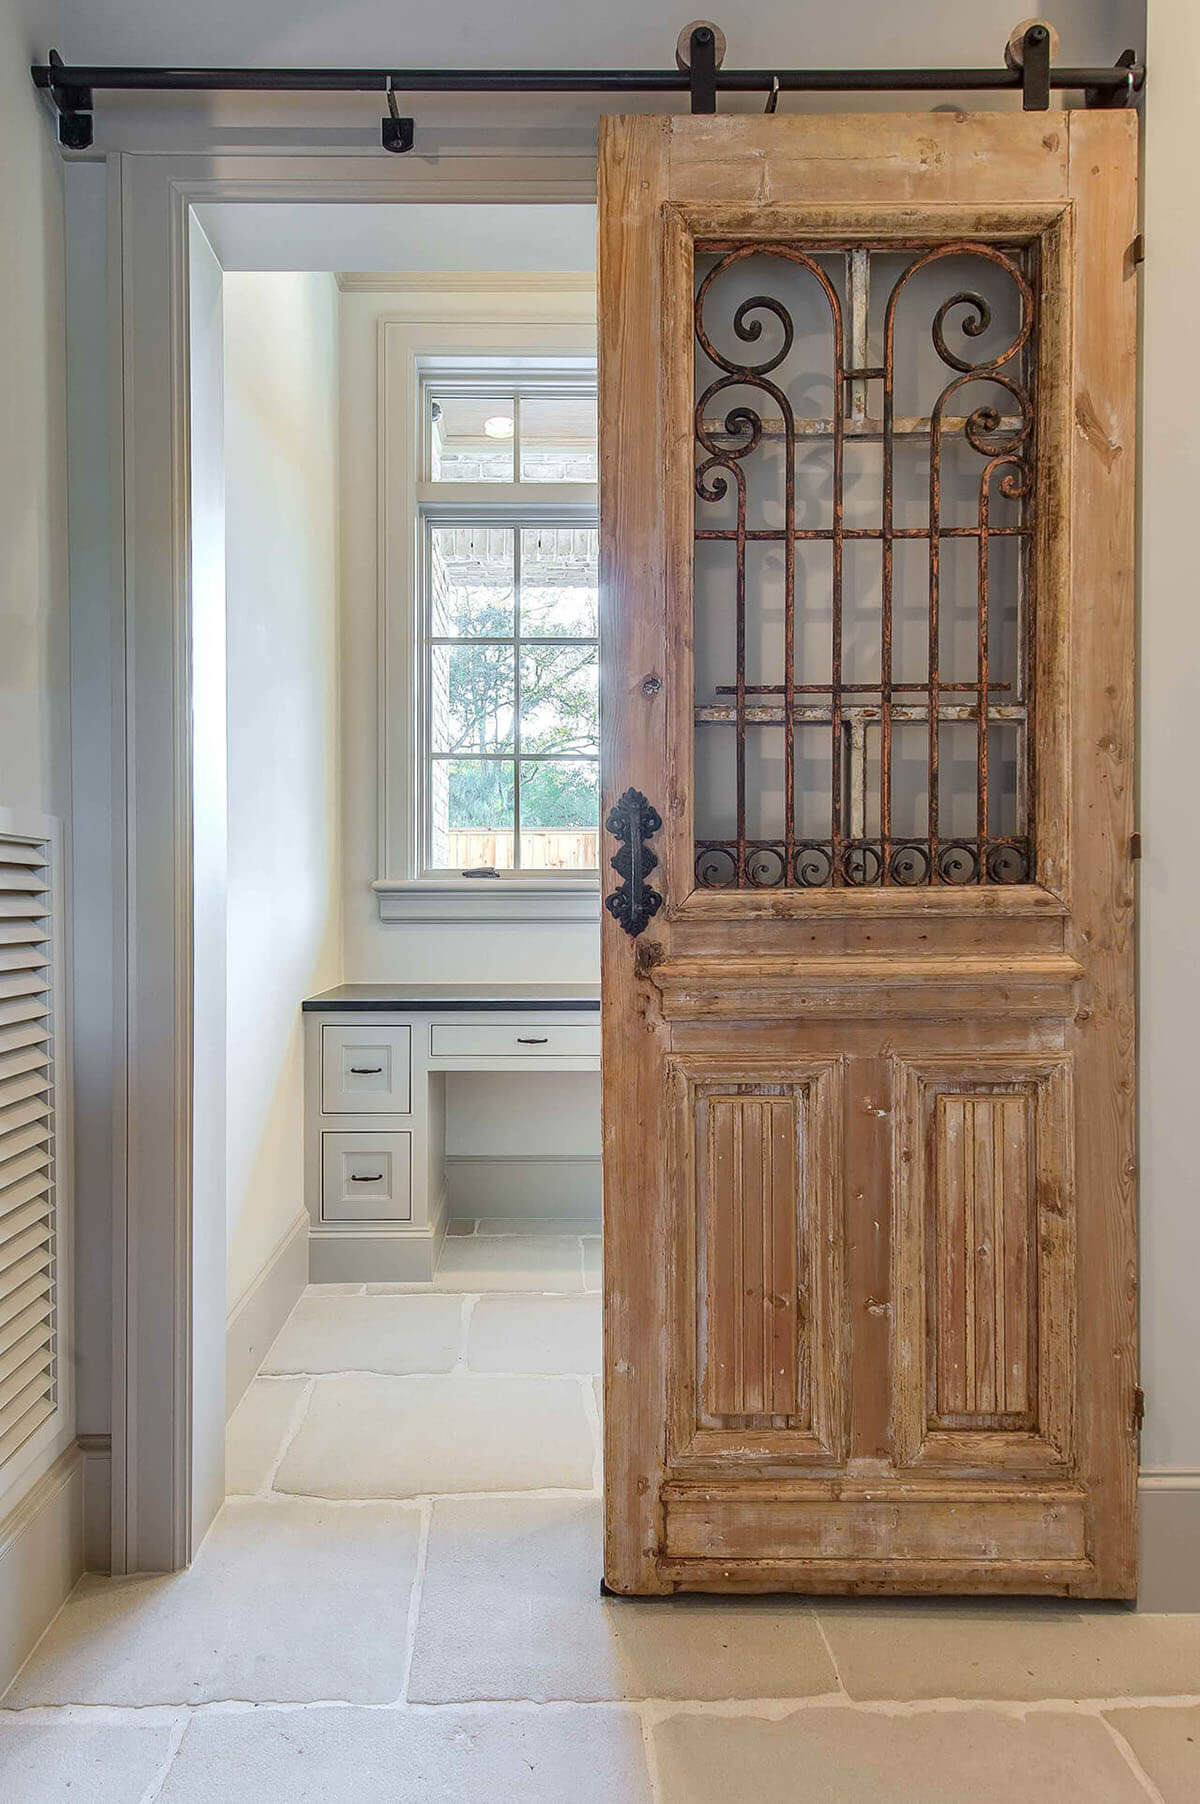 small bathroom barn door ideas sliding mirror vanity inch lowes home depot medicine cabinet best and designs for drop